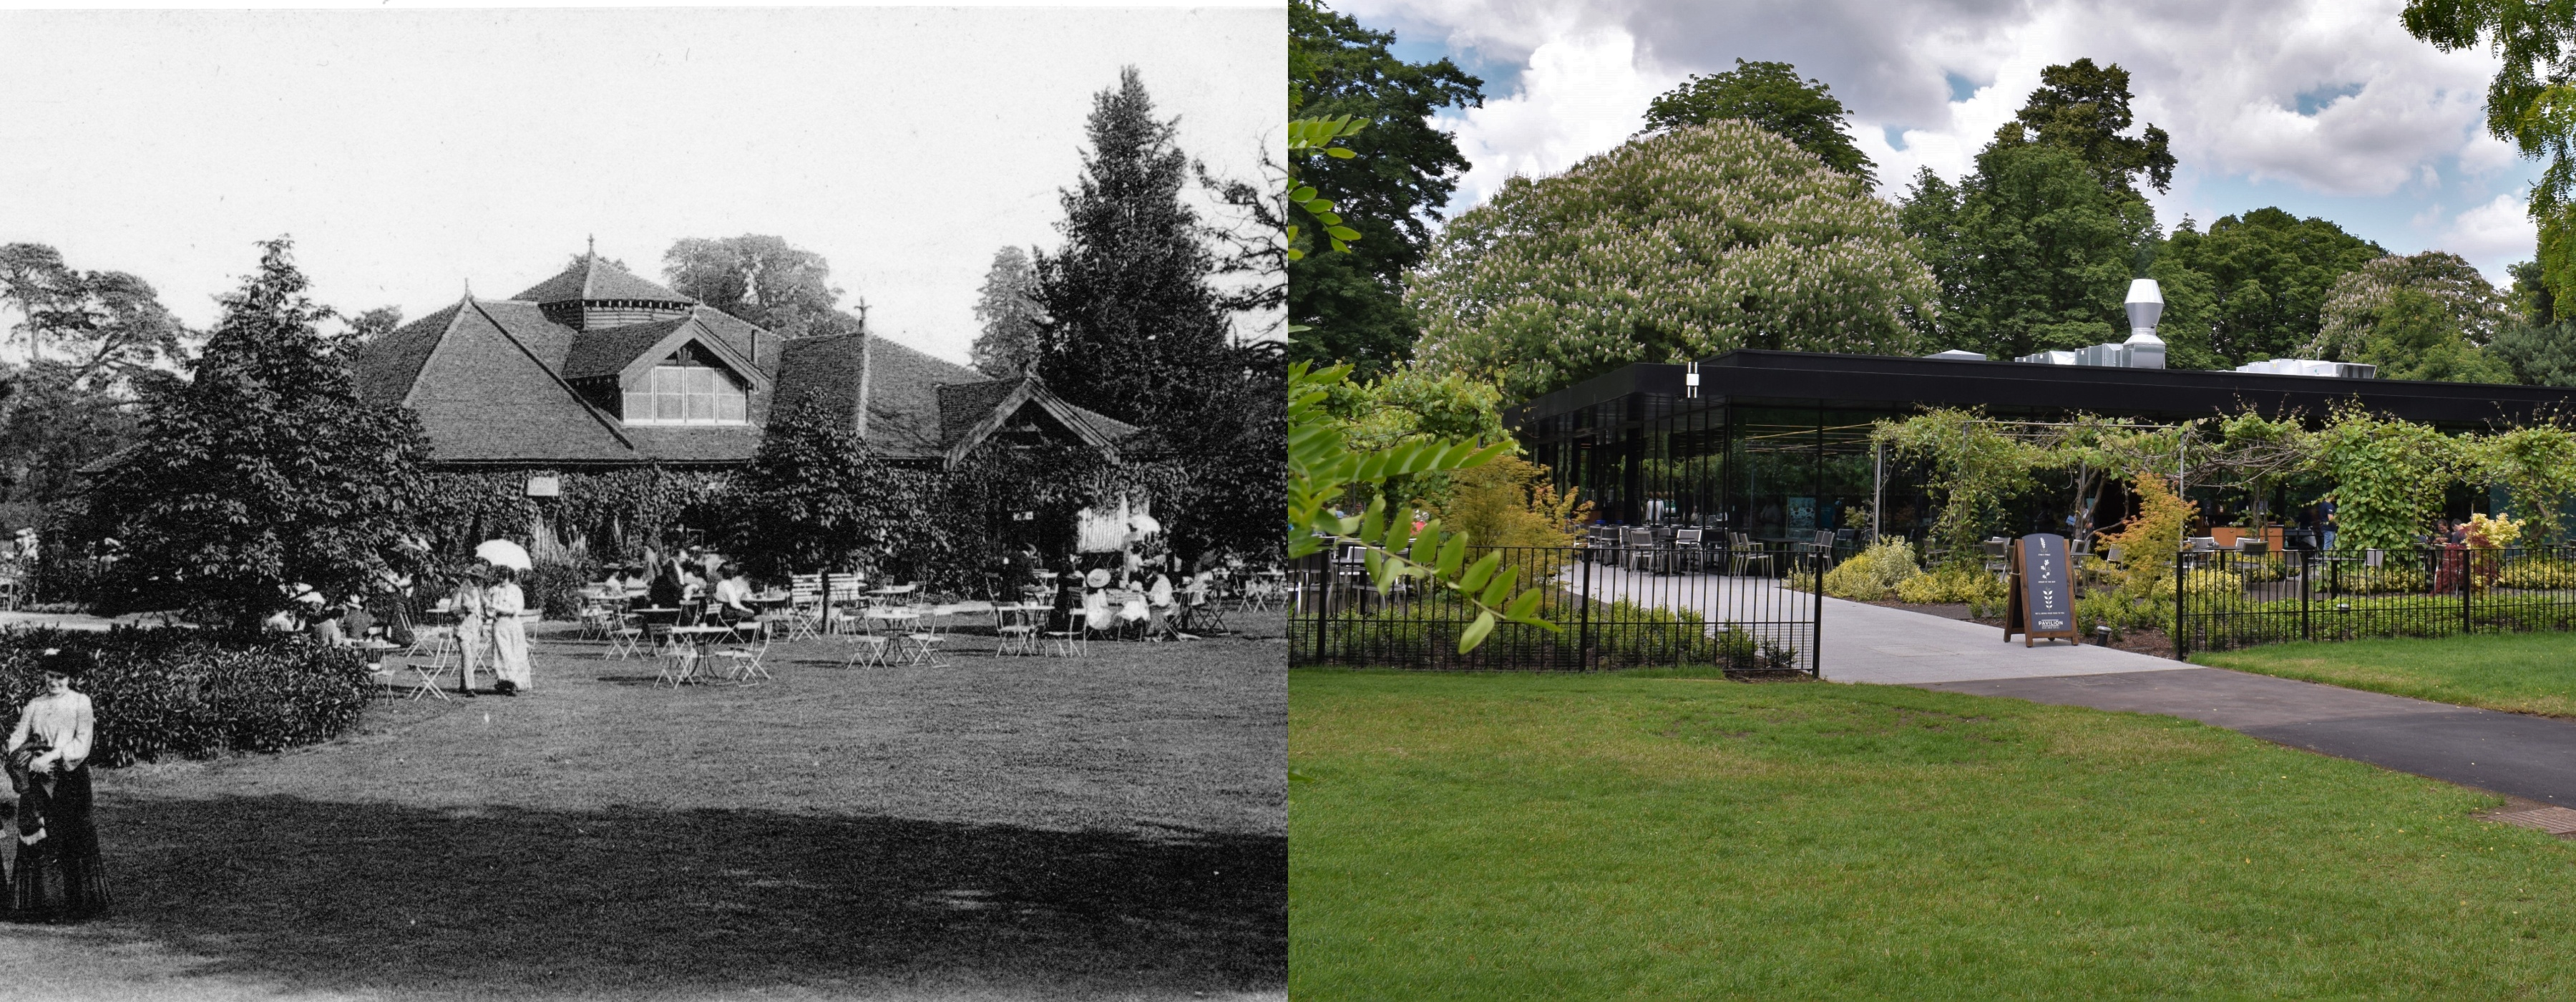 Pavilion then and now